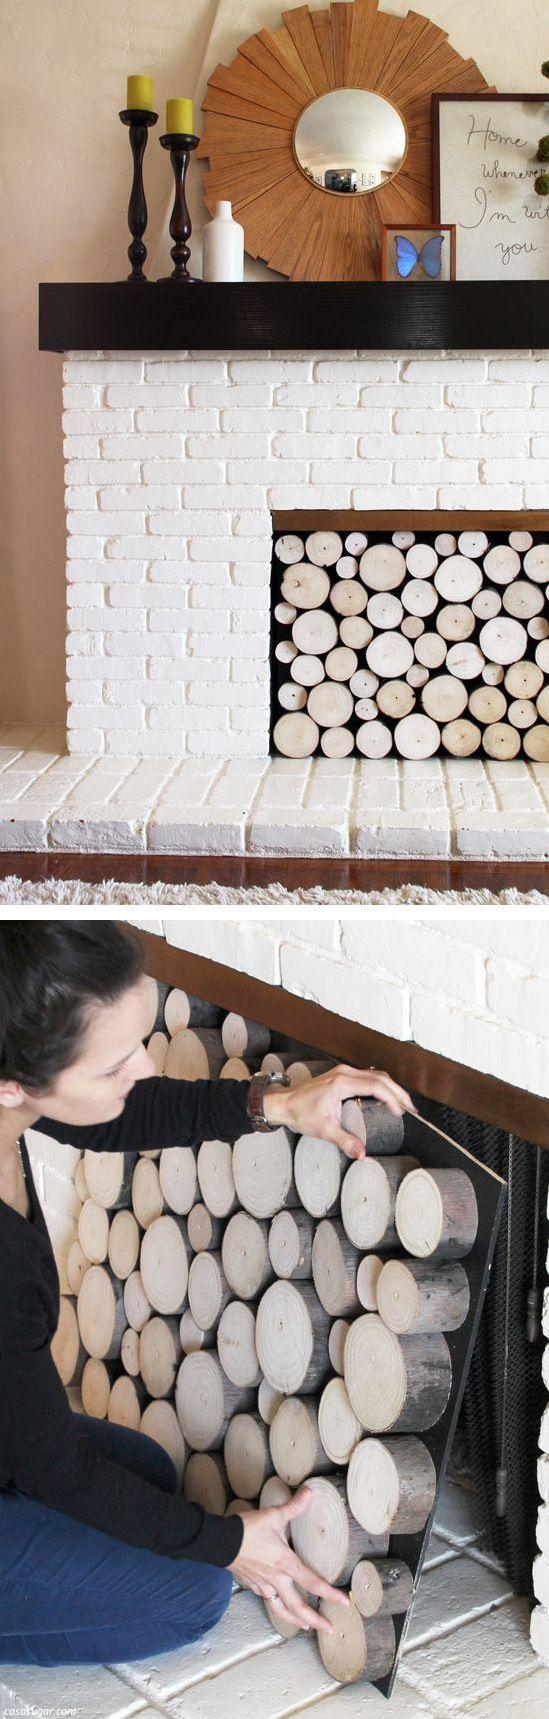 Decorative Fireplace: Perfectly Stacked Logs You Can Remove In Seconds.